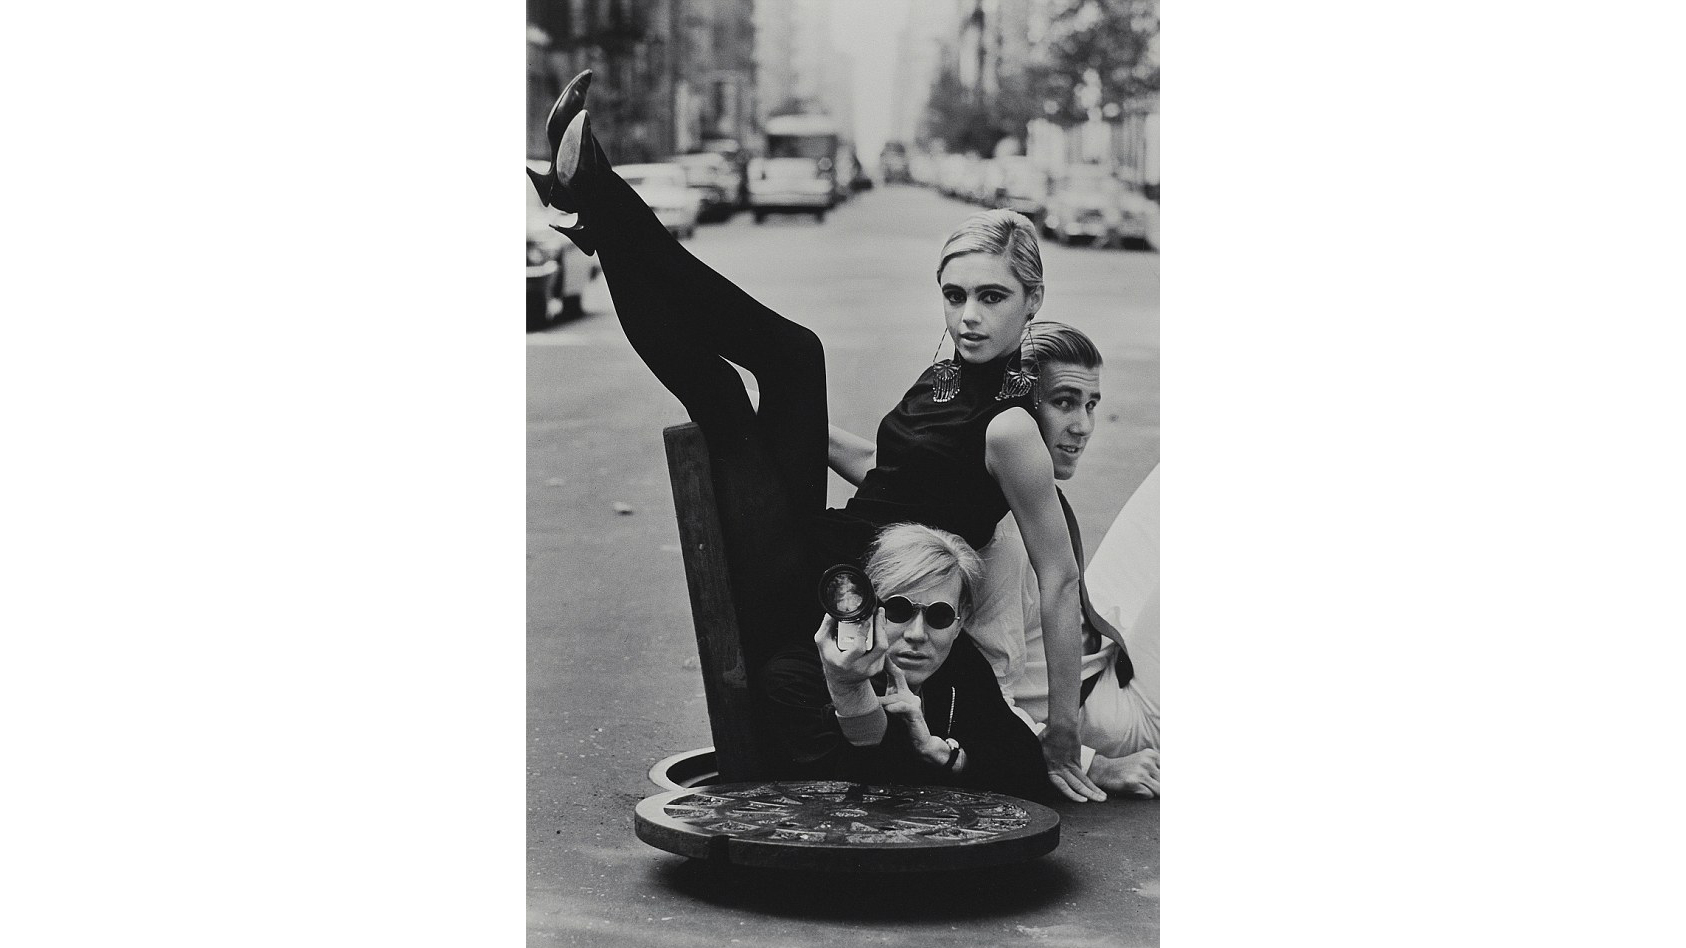 Burt Glinn, Portrait of Andy Warhol, Edie Sedgwick and Chuck Wein, 1965